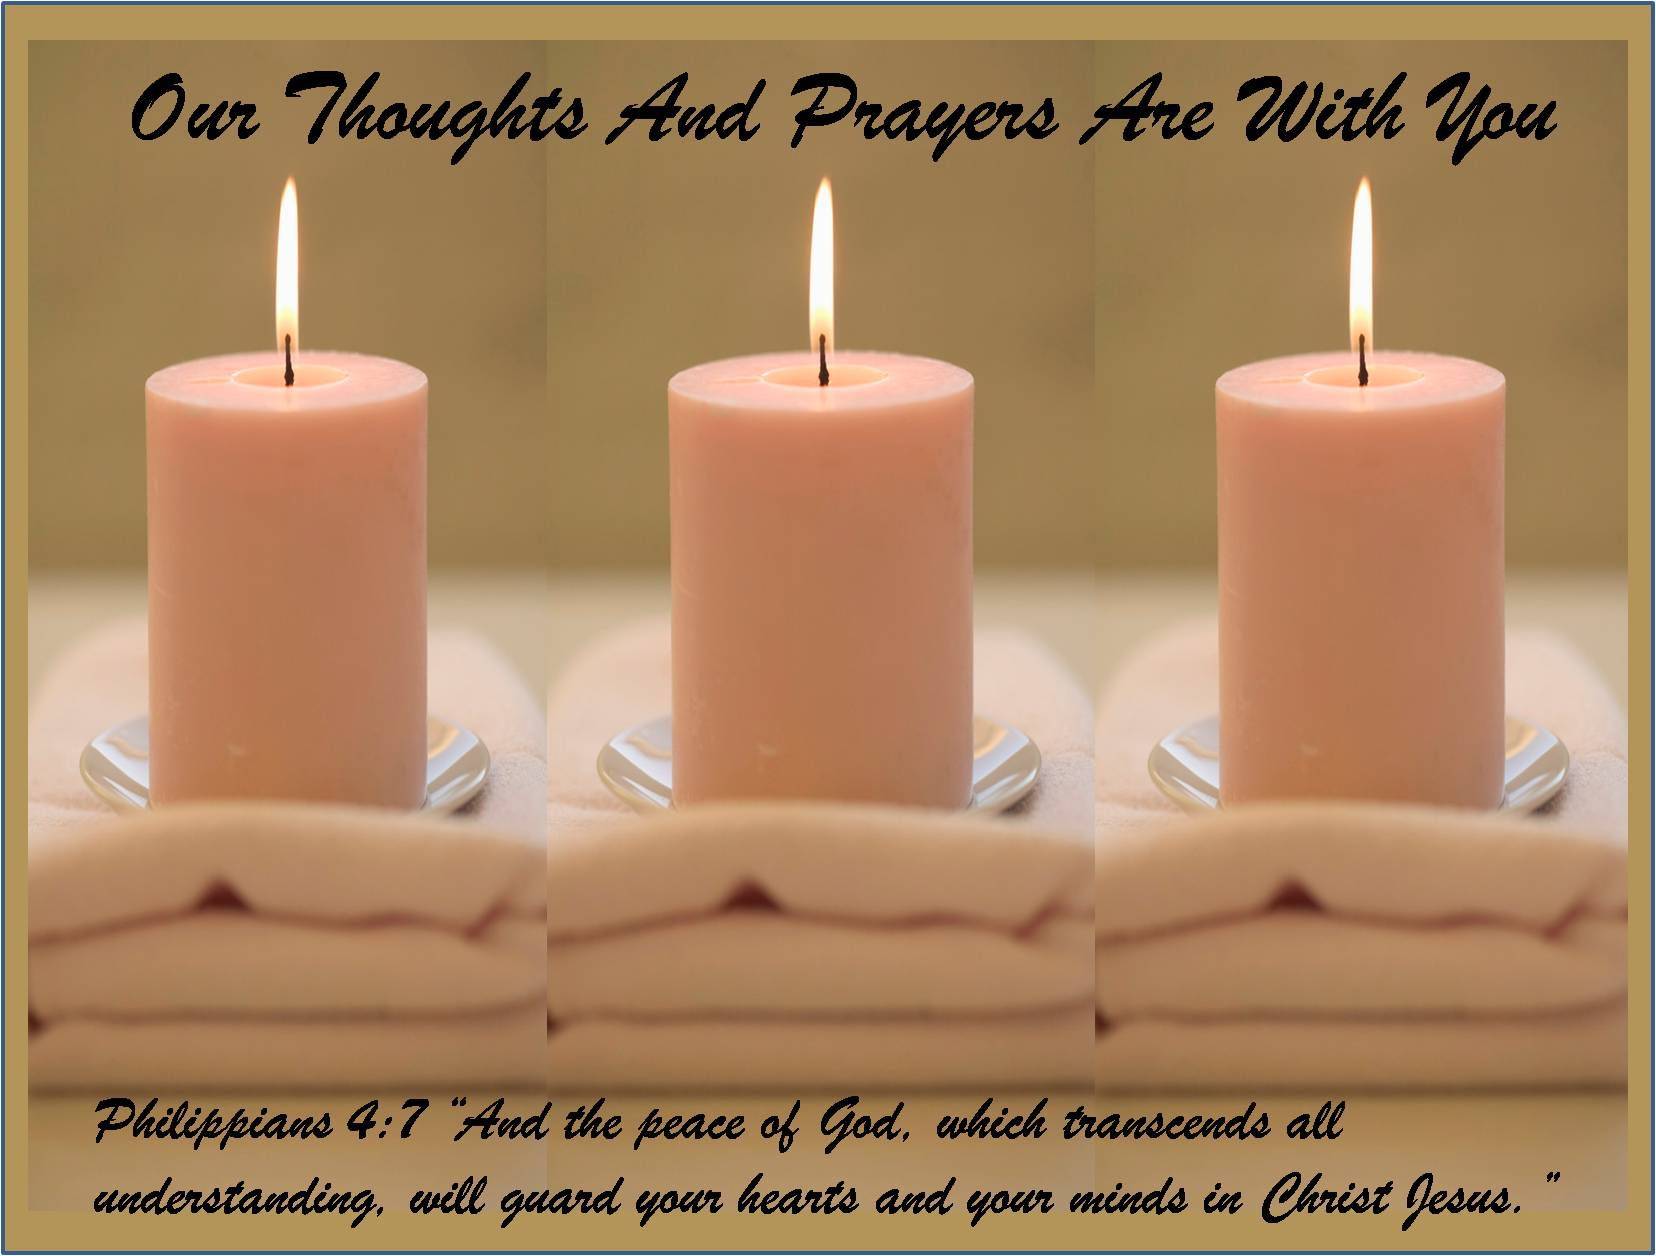 Prayer For Healing And Strength Quotes Our thoughts and prayers are